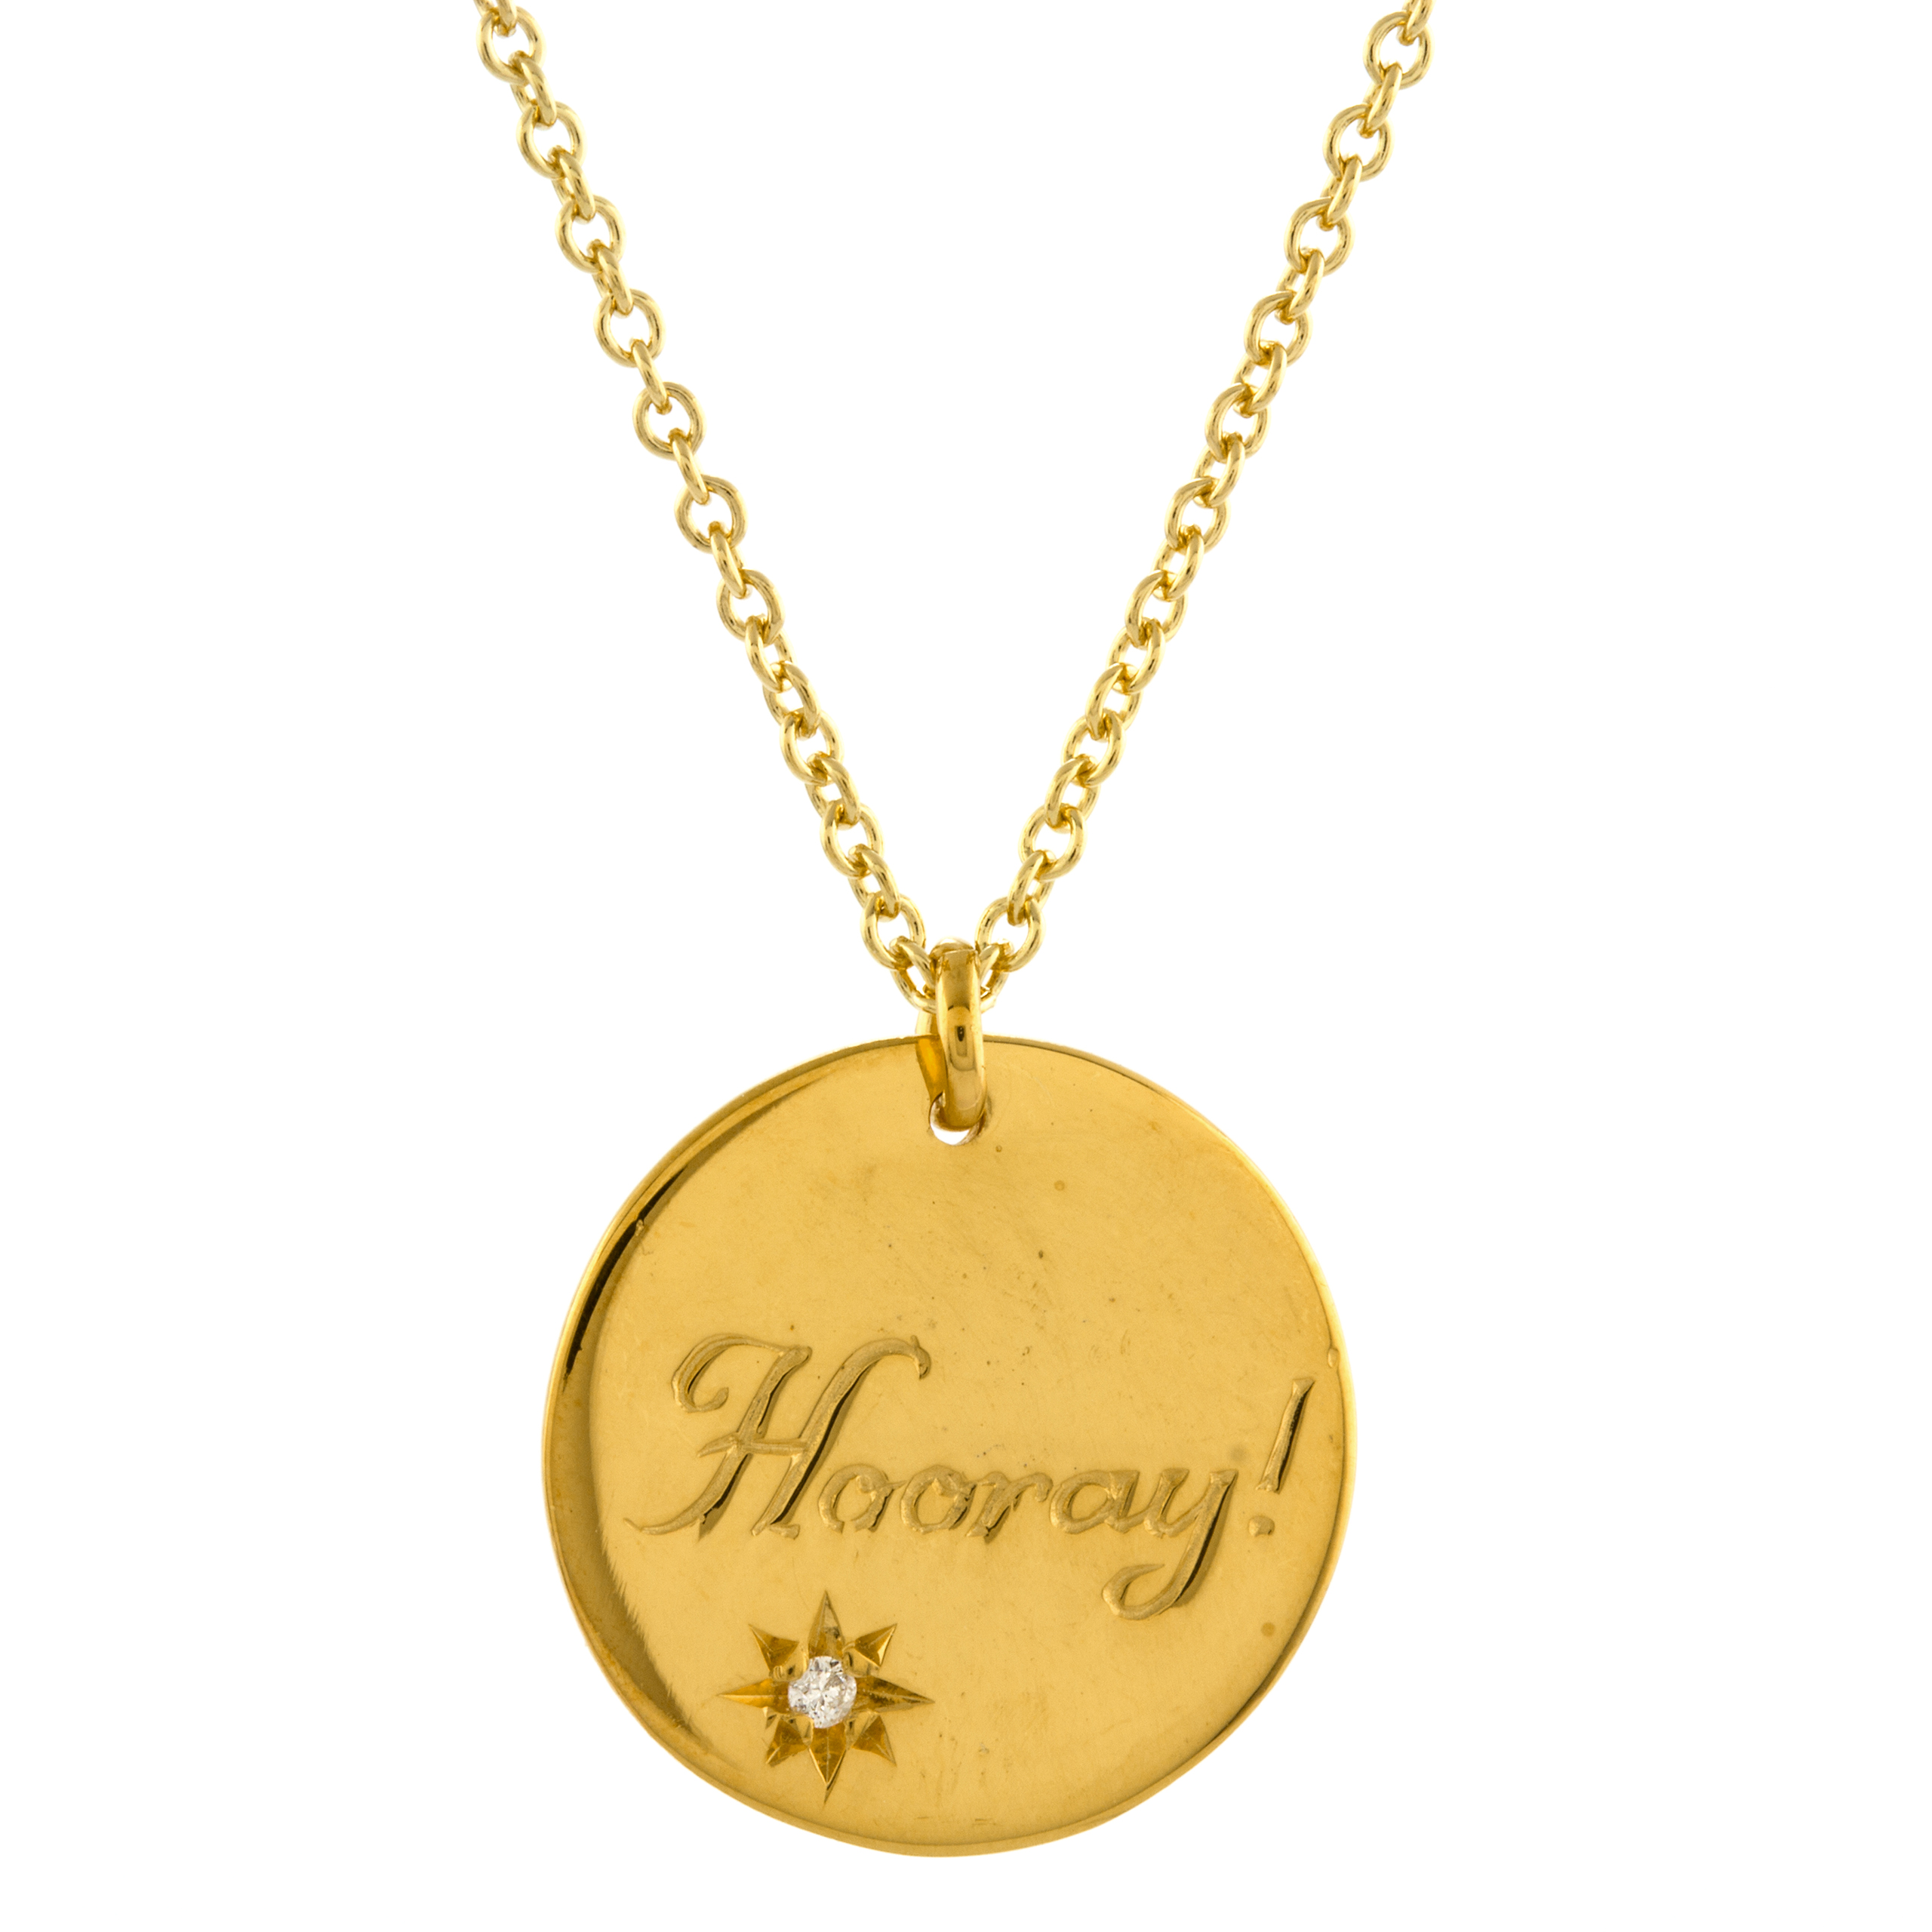 ALEX MONROE HOORAY DISC NECKLACE 180